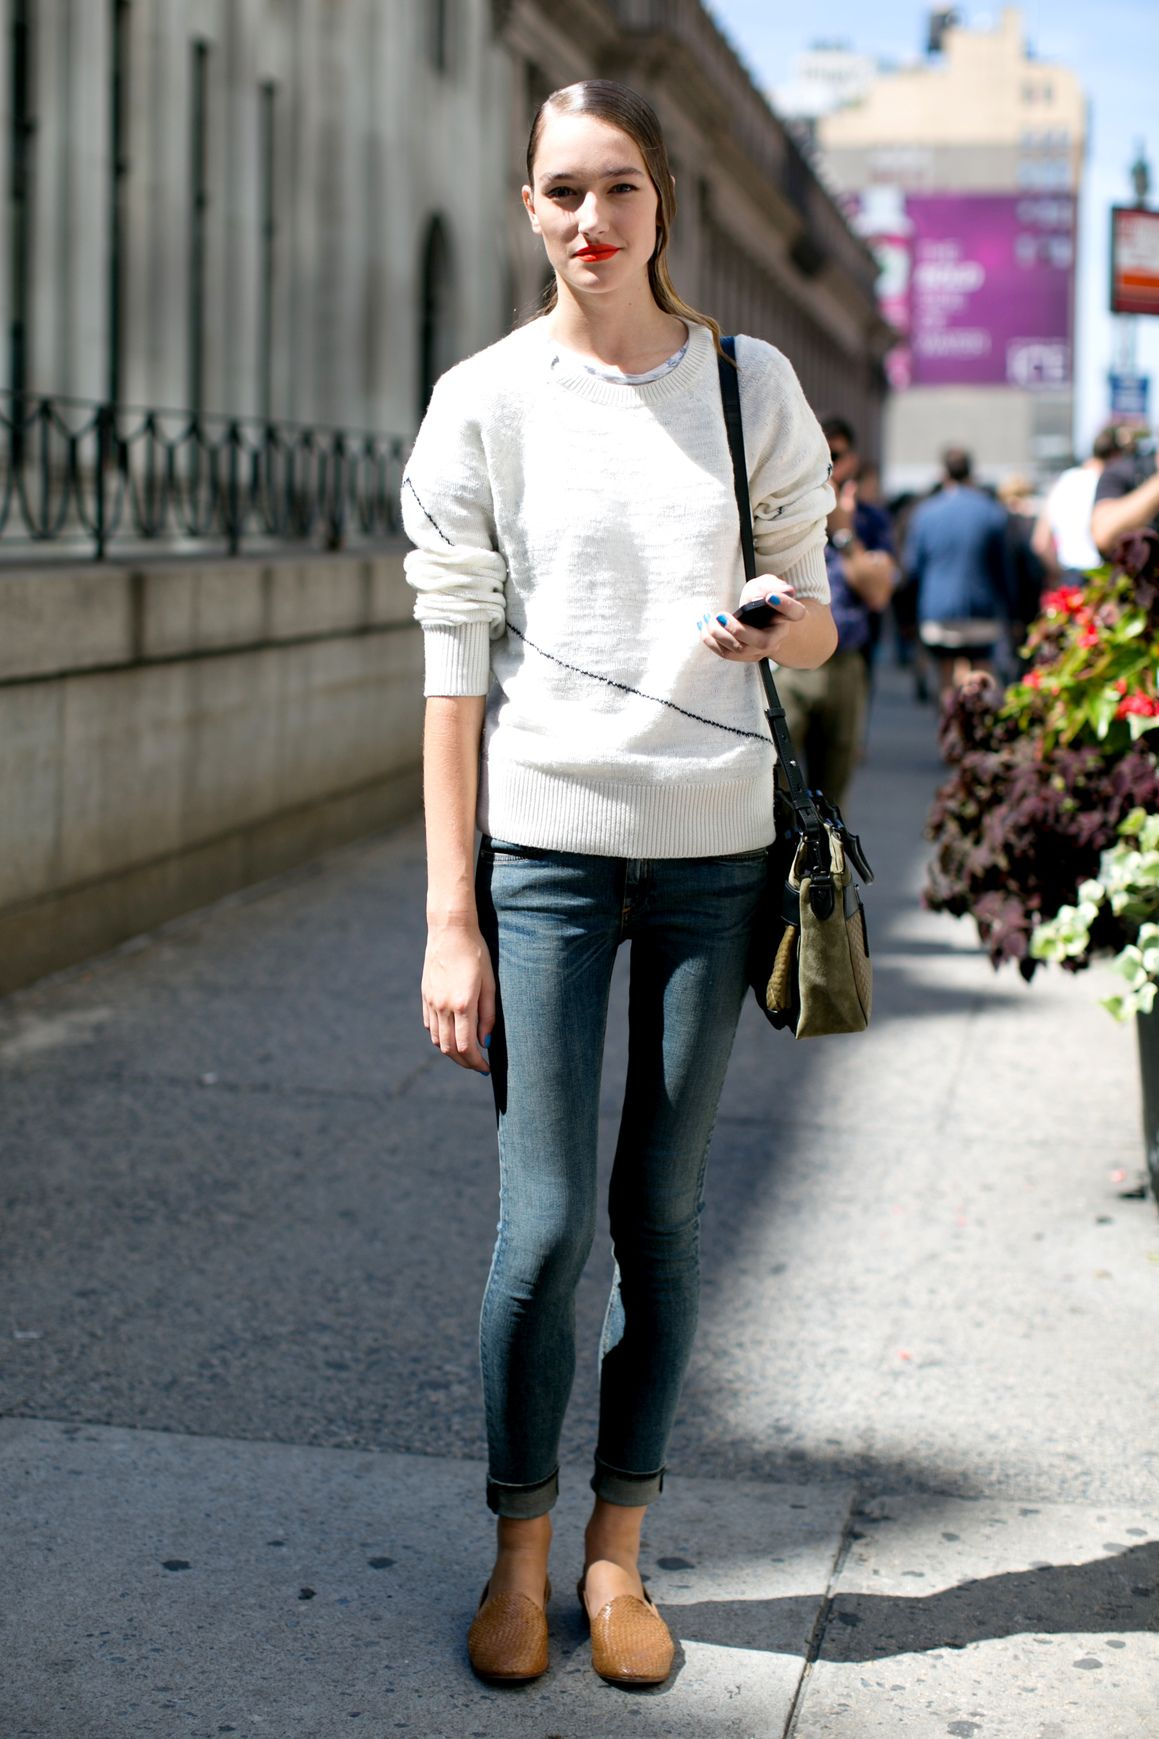 130 Street Style Photos That Prove Models Really Are AnotherSpecies | StyleCaster